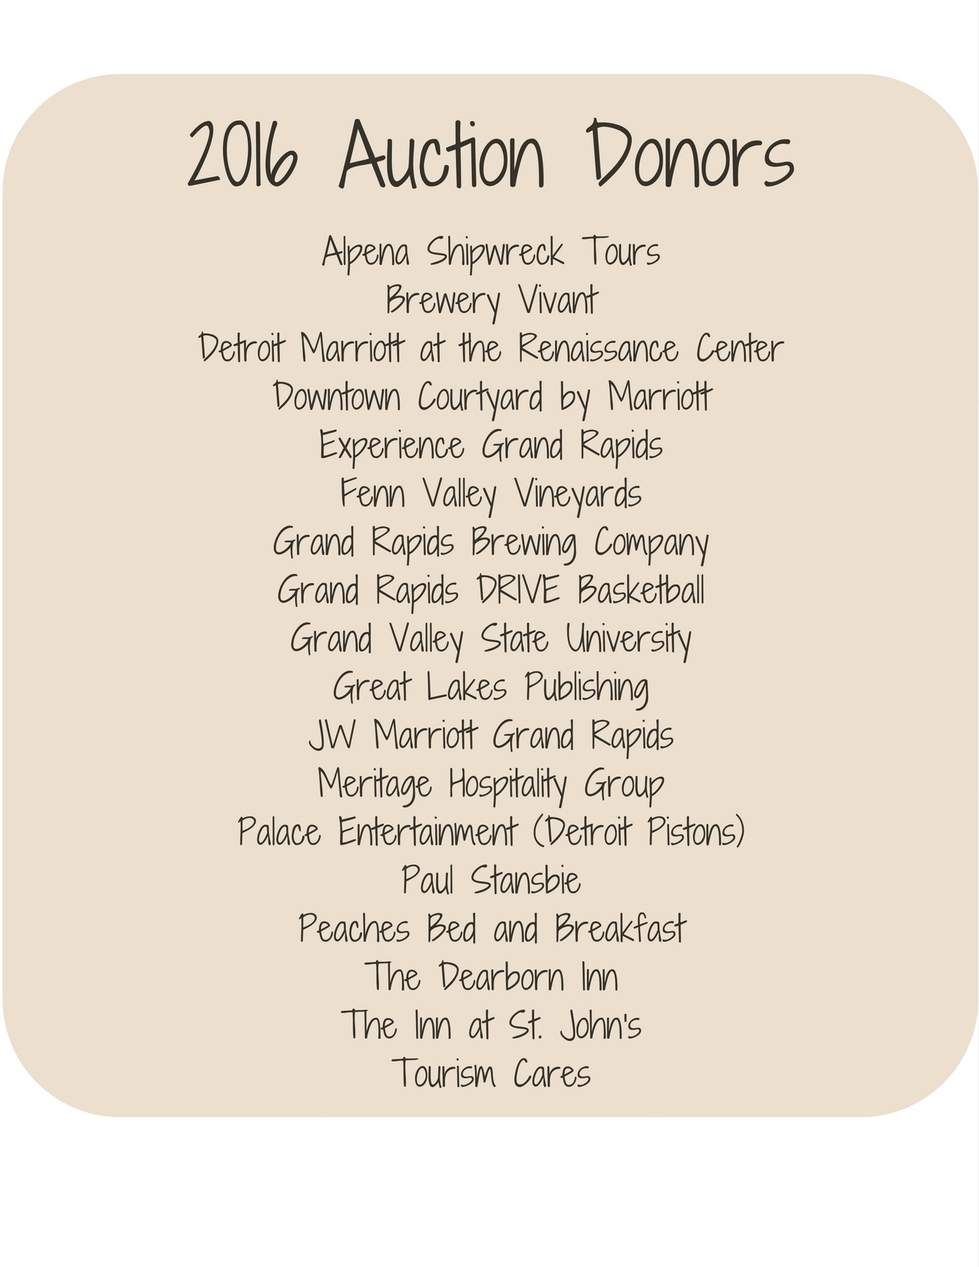 2016 Auction Donors